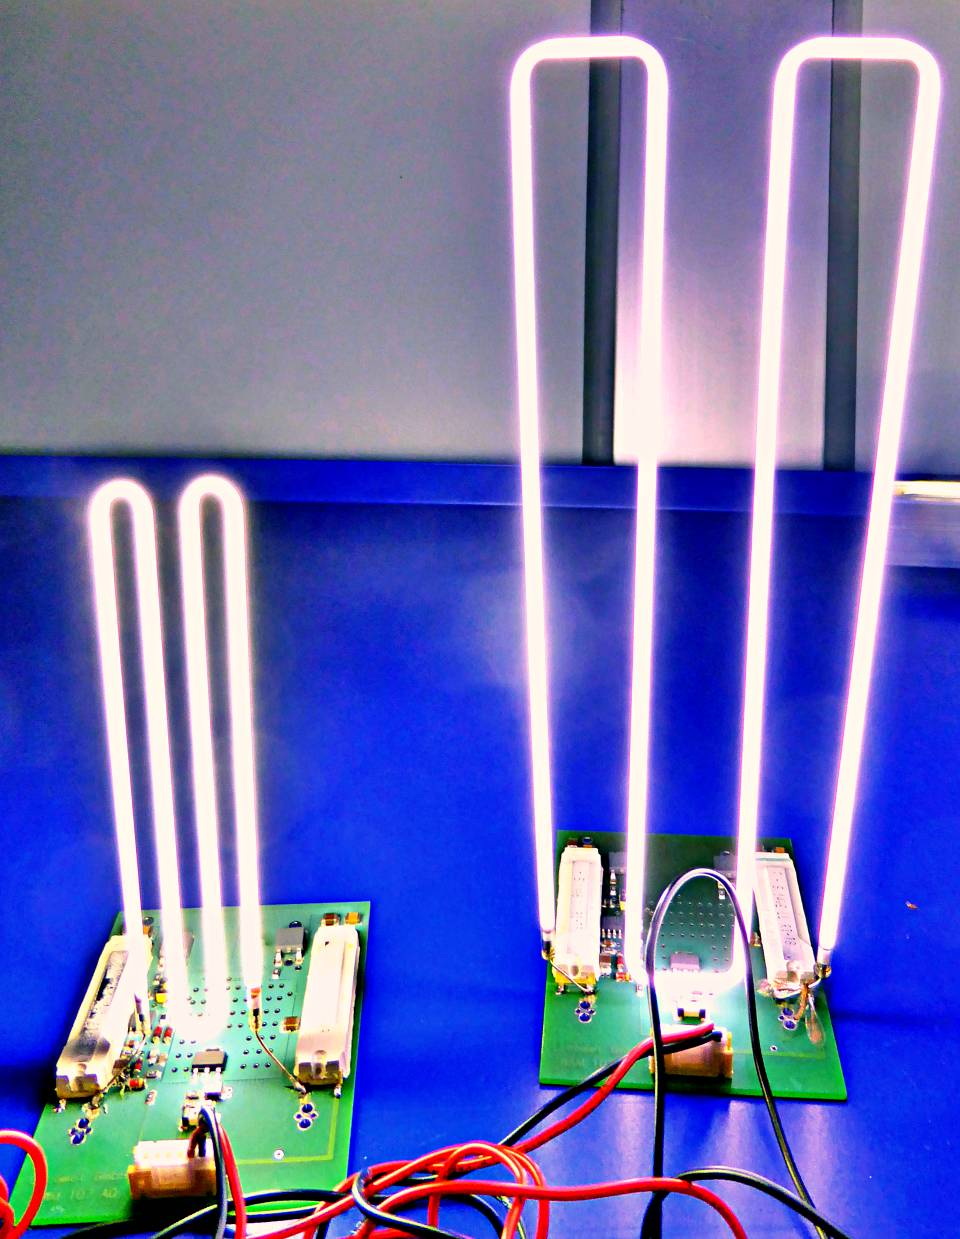 e³ light sources can also be formed during production - with special machines - we offer 2D forming